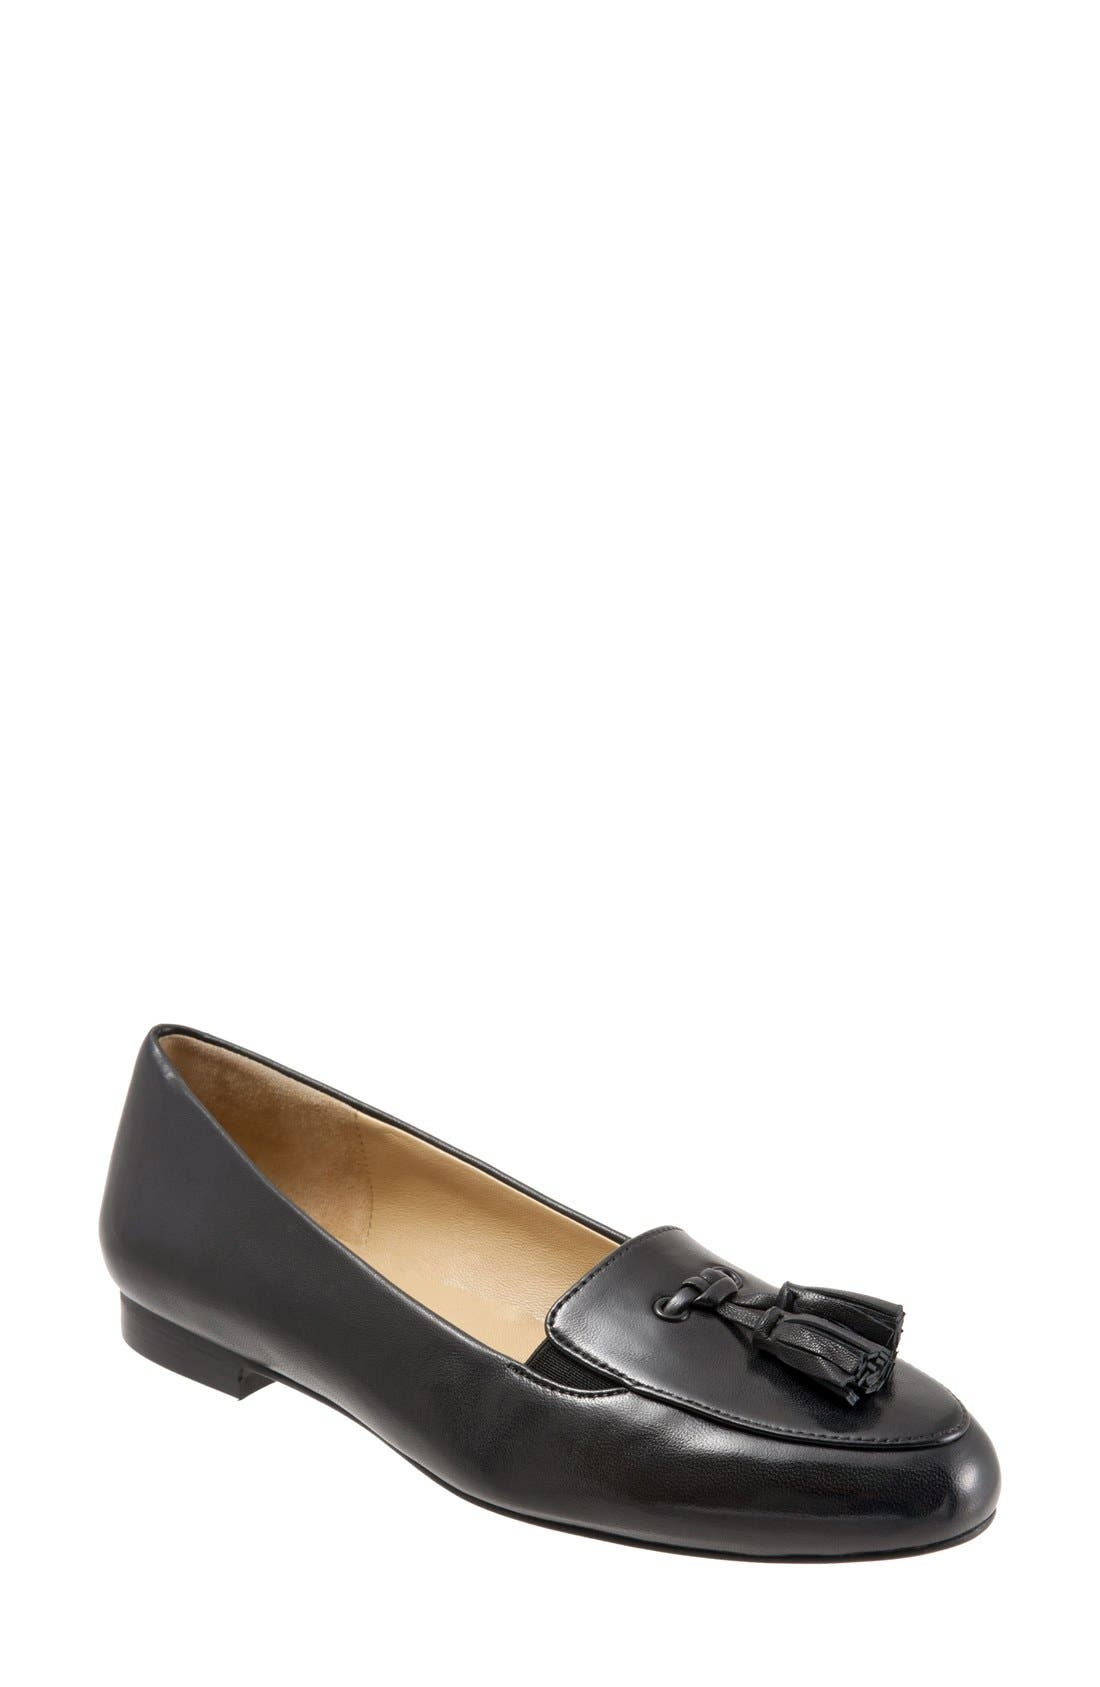 'Caroline' Tassel Loafer,                         Main,                         color, BLACK LEATHER